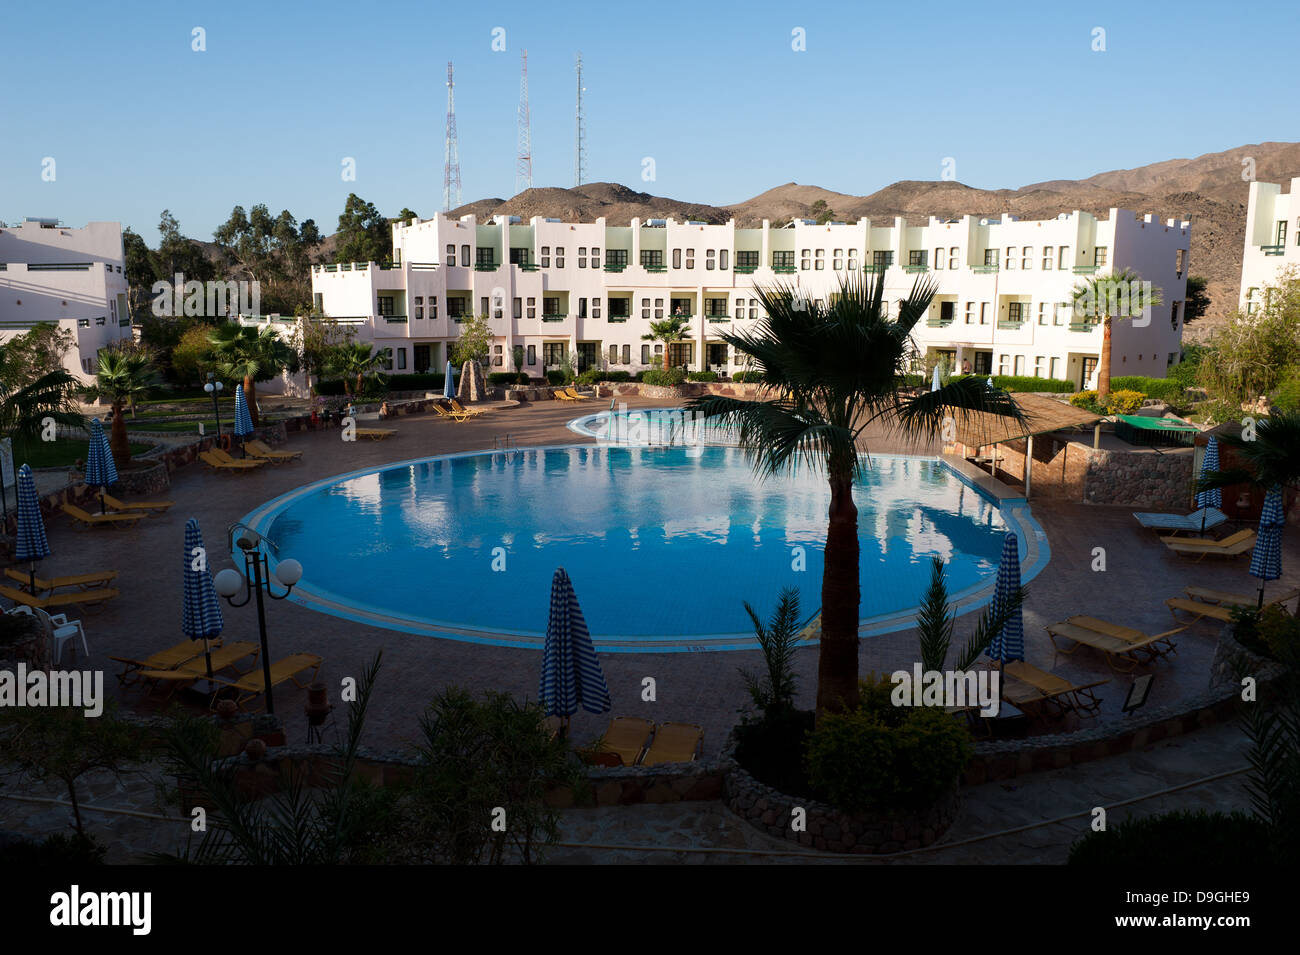 Sol y Mar Hotel, Taba, South Sinai, Egypt - Stock Image